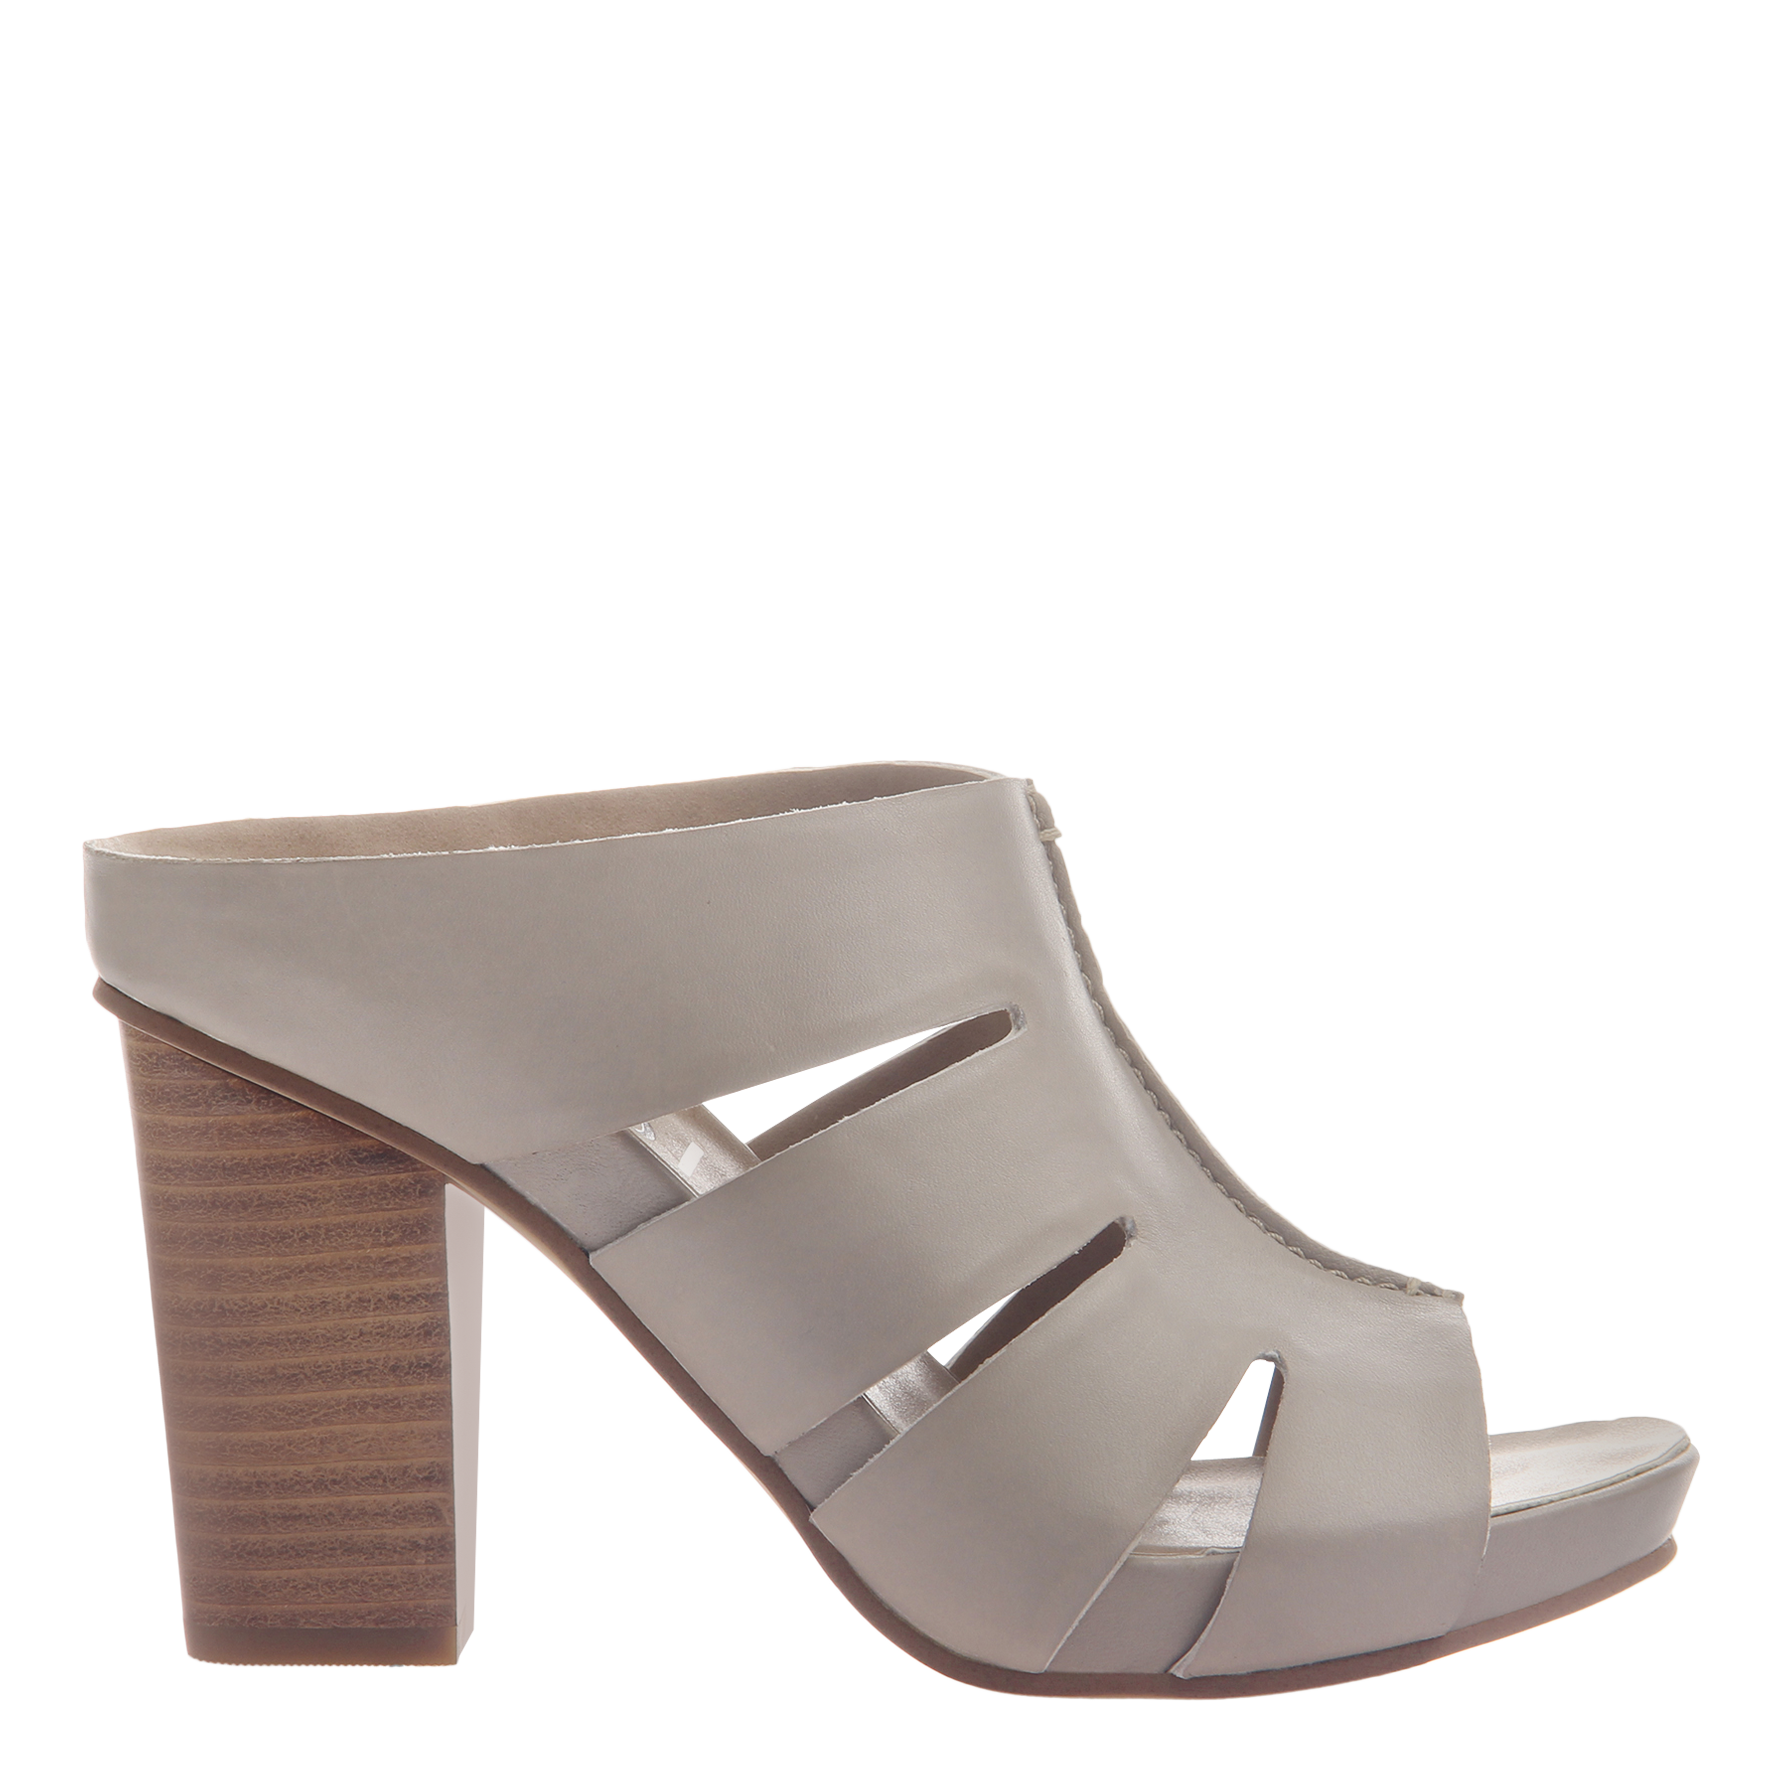 Nicole womens heeled sandal Delphine in grey side view